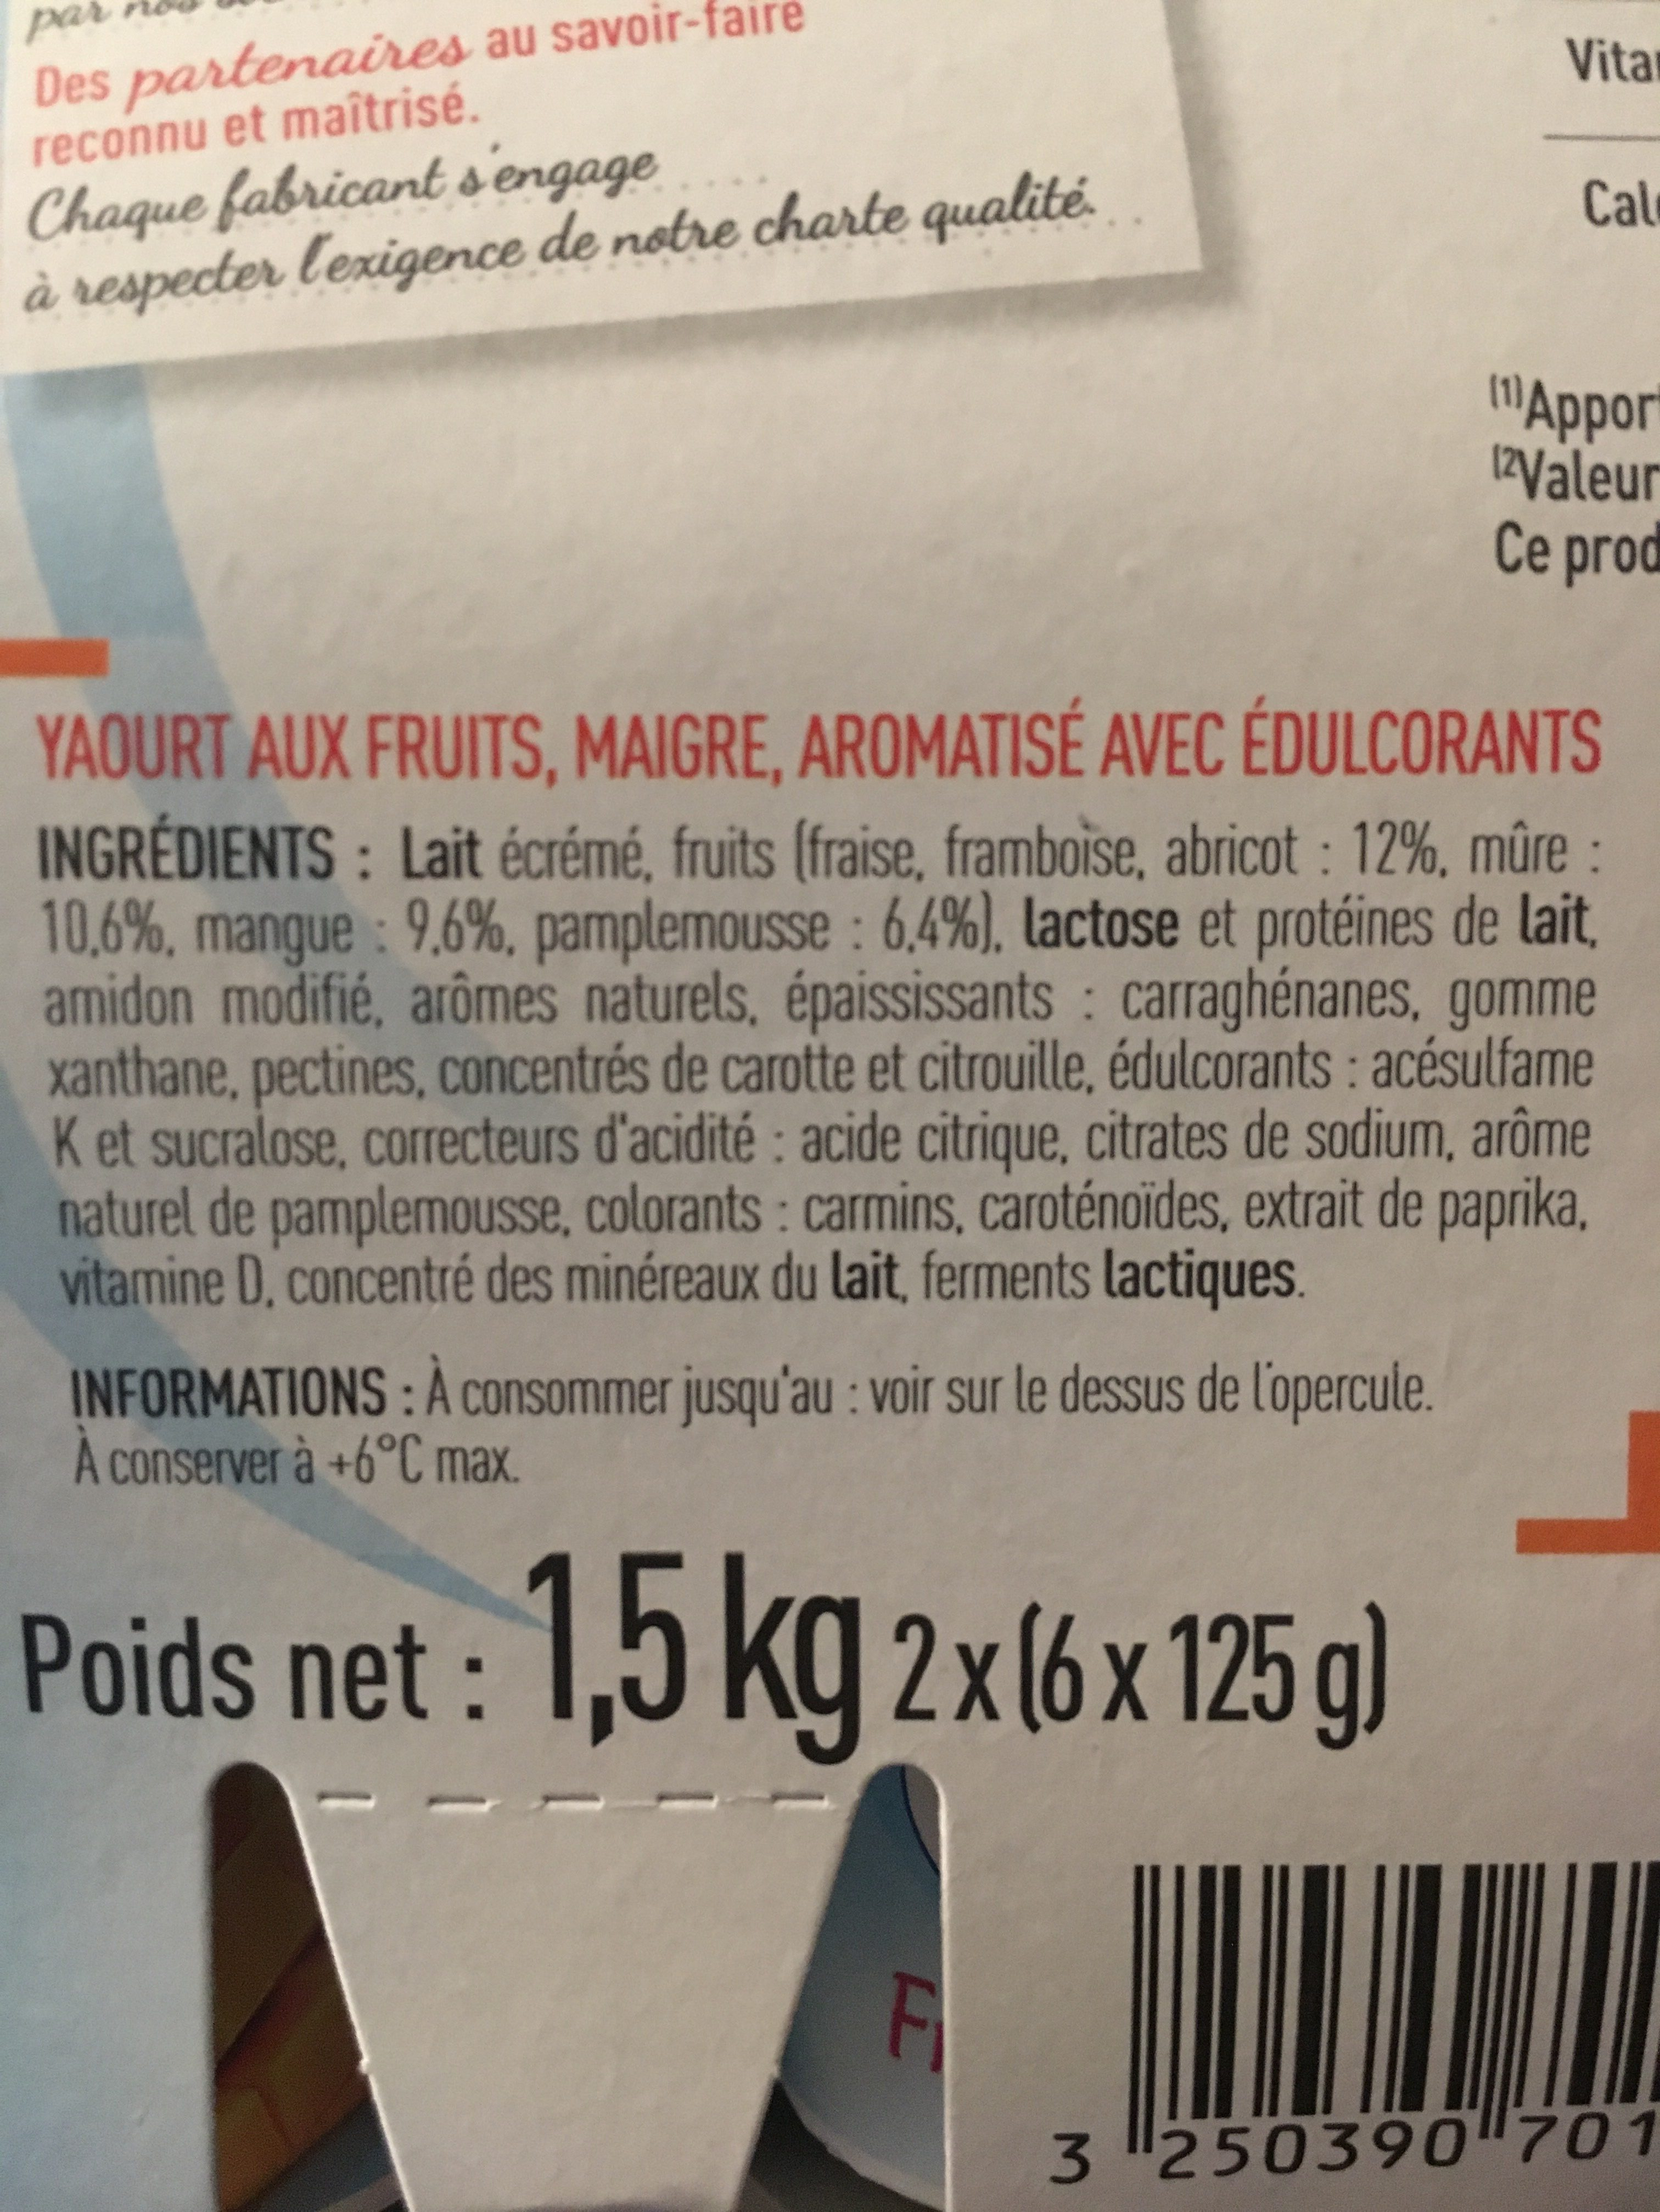 Yaourt aux fruits - Ingredients